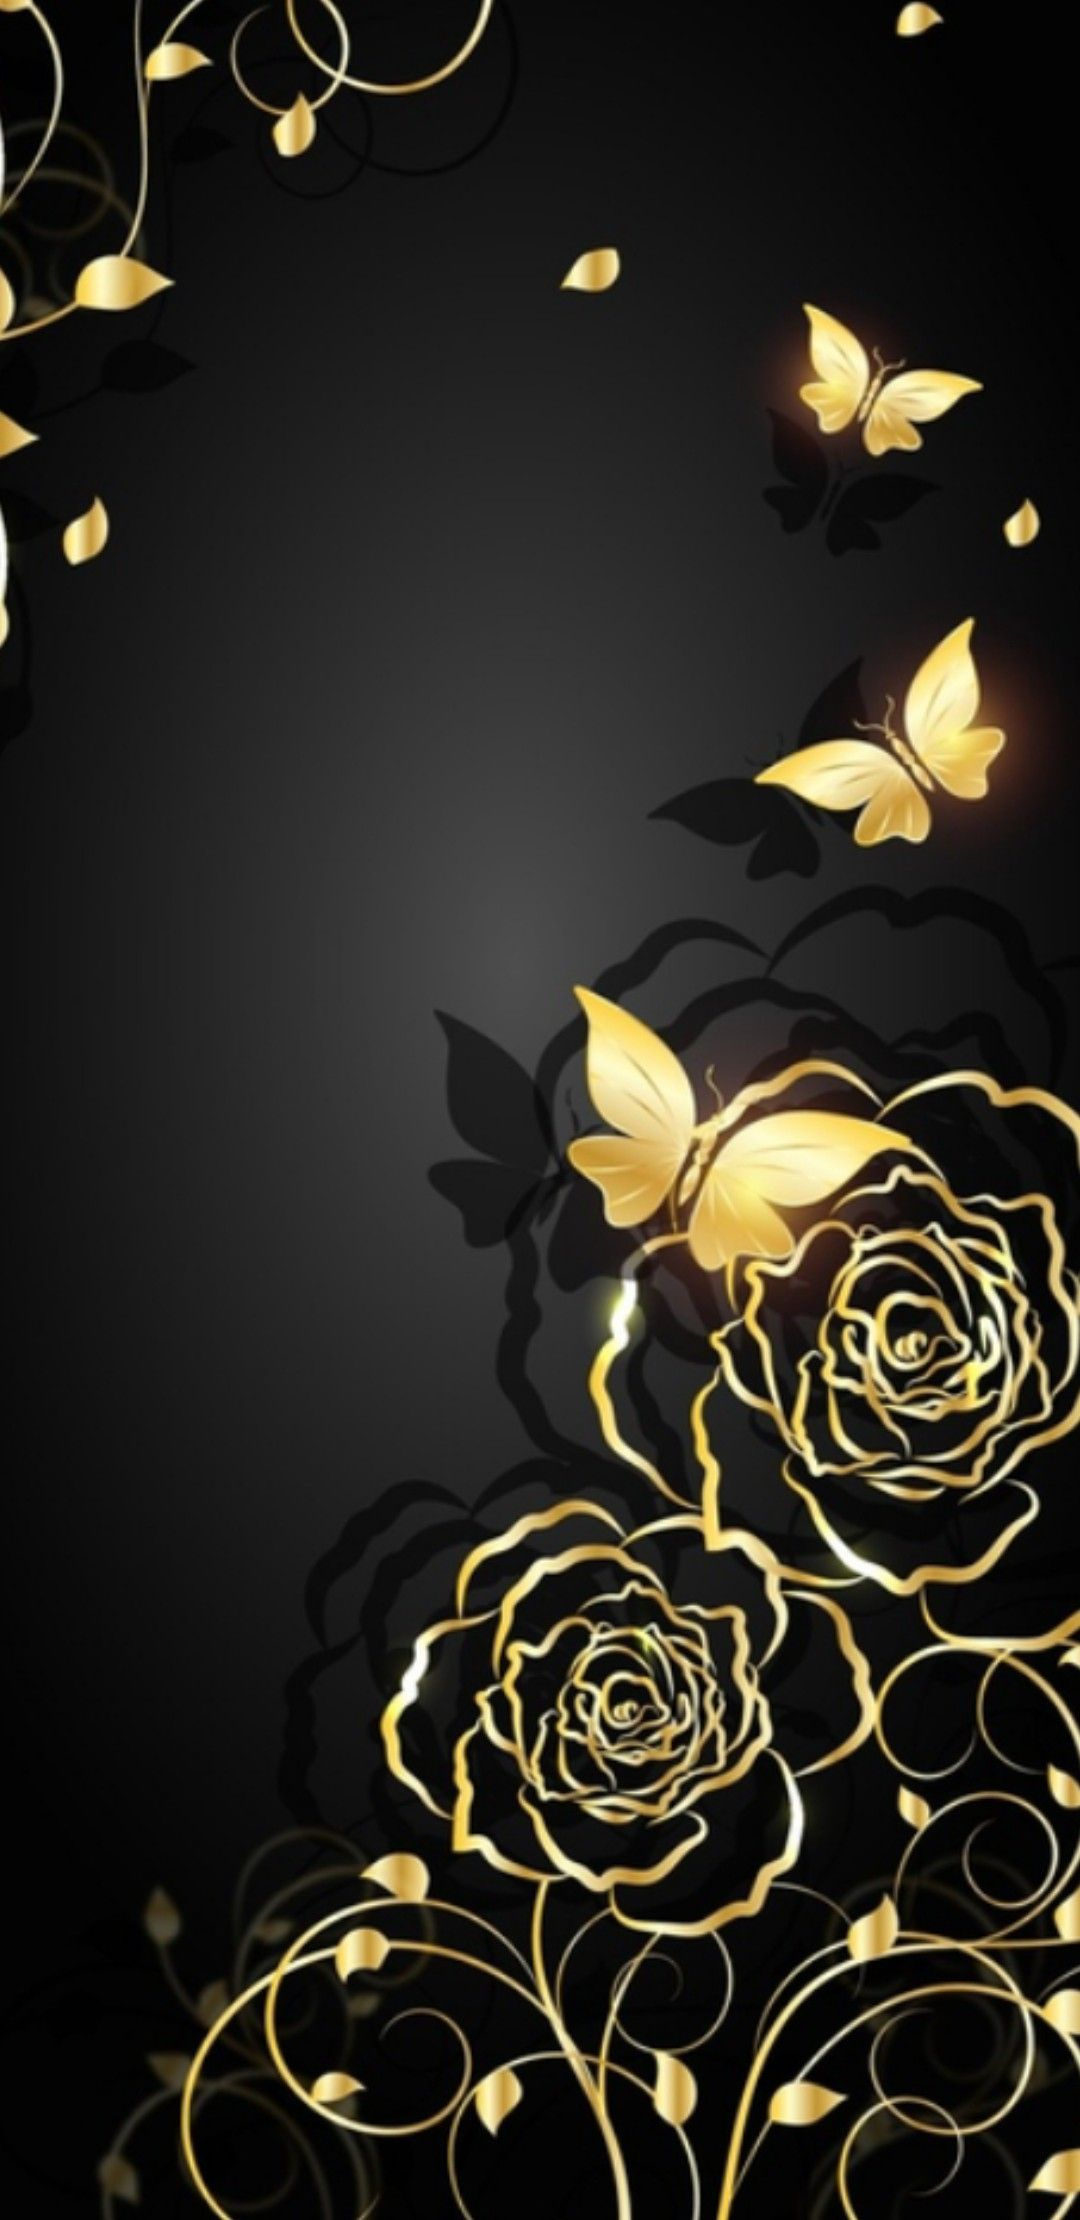 Black and Gold I Wallpaper Roses and Butterflies in 2020